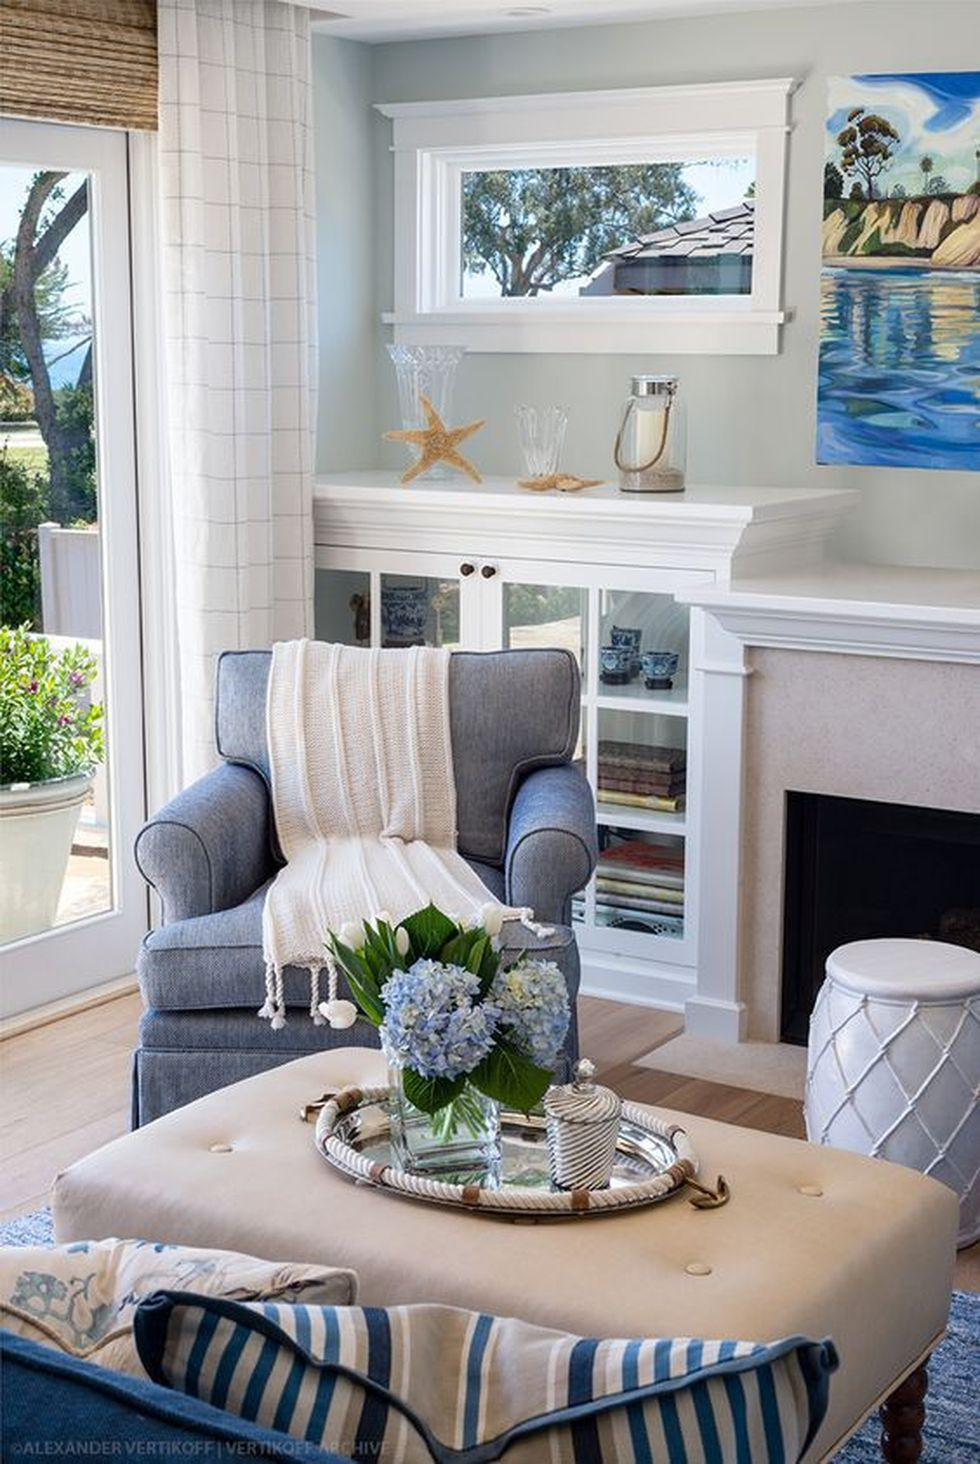 50 Best Furniture On Budget for Your Apartment Living Room ... on Awesome Apartment Budget Apartment Living Room Ideas  id=17004